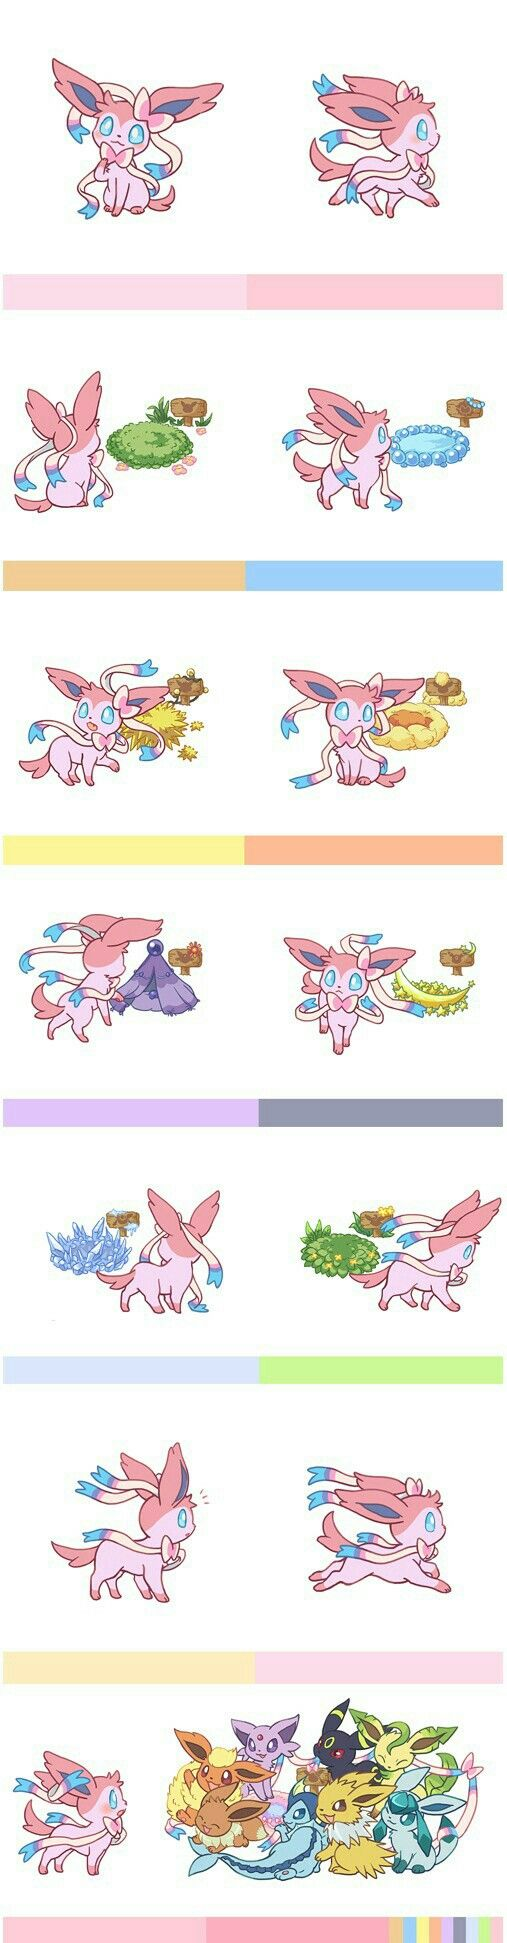 Eevee evolutions, Flareon, Jolteon, Glaceon, Leafeon, Umbreon, Espeon, Sylveon, Vaporeon, nests, homes, cute, comic; Pokémon